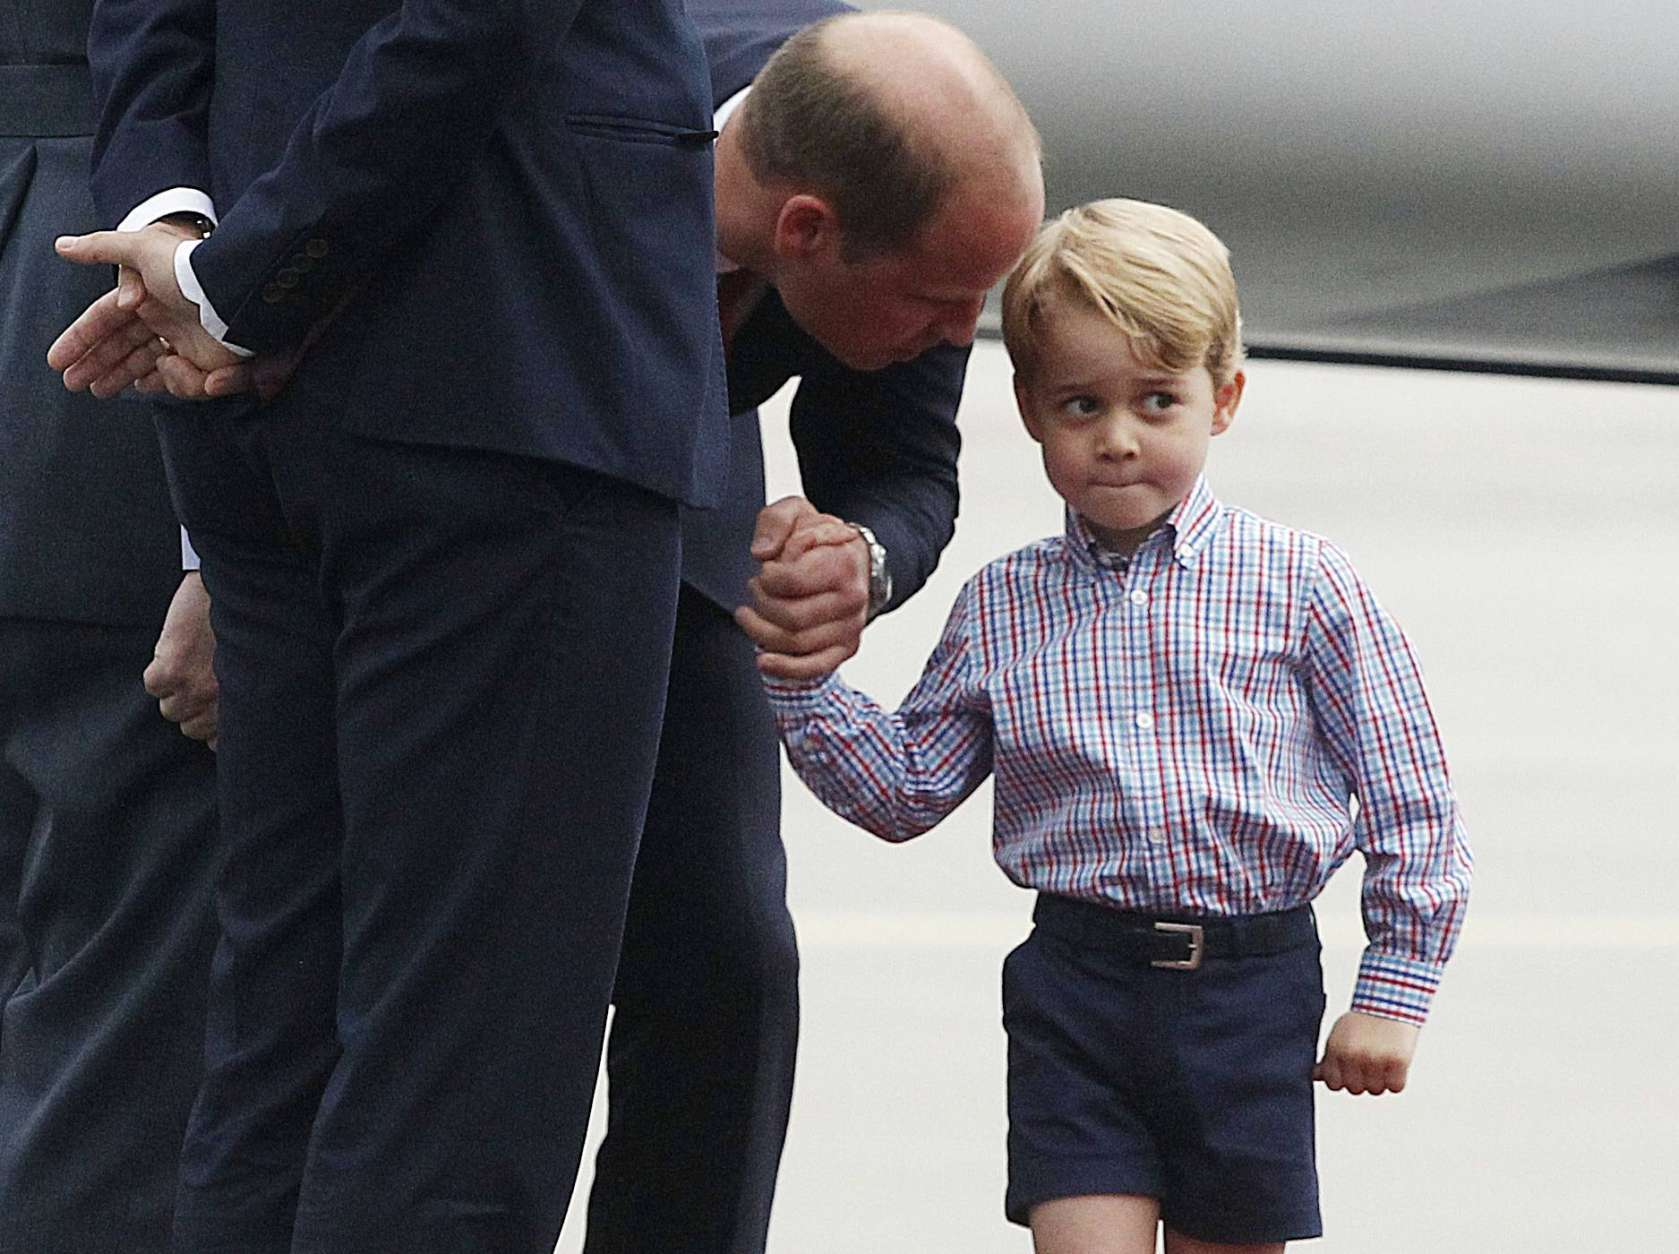 FILE - In this Monday, July 17, 2017 file photo, Britain's Prince William, left, holds the hand of his son Prince George on arrival at the airport, in Warsaw, Poland. A 31-year-old man has been charged in England with sharing a photo of Prince George and details about his pre-school in a social media post prosecutors allege was meant to help others plan terror attacks, it was announced on Wednesday, Dec. 6, 2017. Prosecutors allege Husnain Rashid put the information about the 4-year-old son of Prince William and the former Kate Middleton on the encrypted platform Telegram. Britain's Sun newspaper reports that Rashid allegedly posted the silhouette of an Islamic State fighter beside George. (AP Photo/Czarek Sokolowski, file)